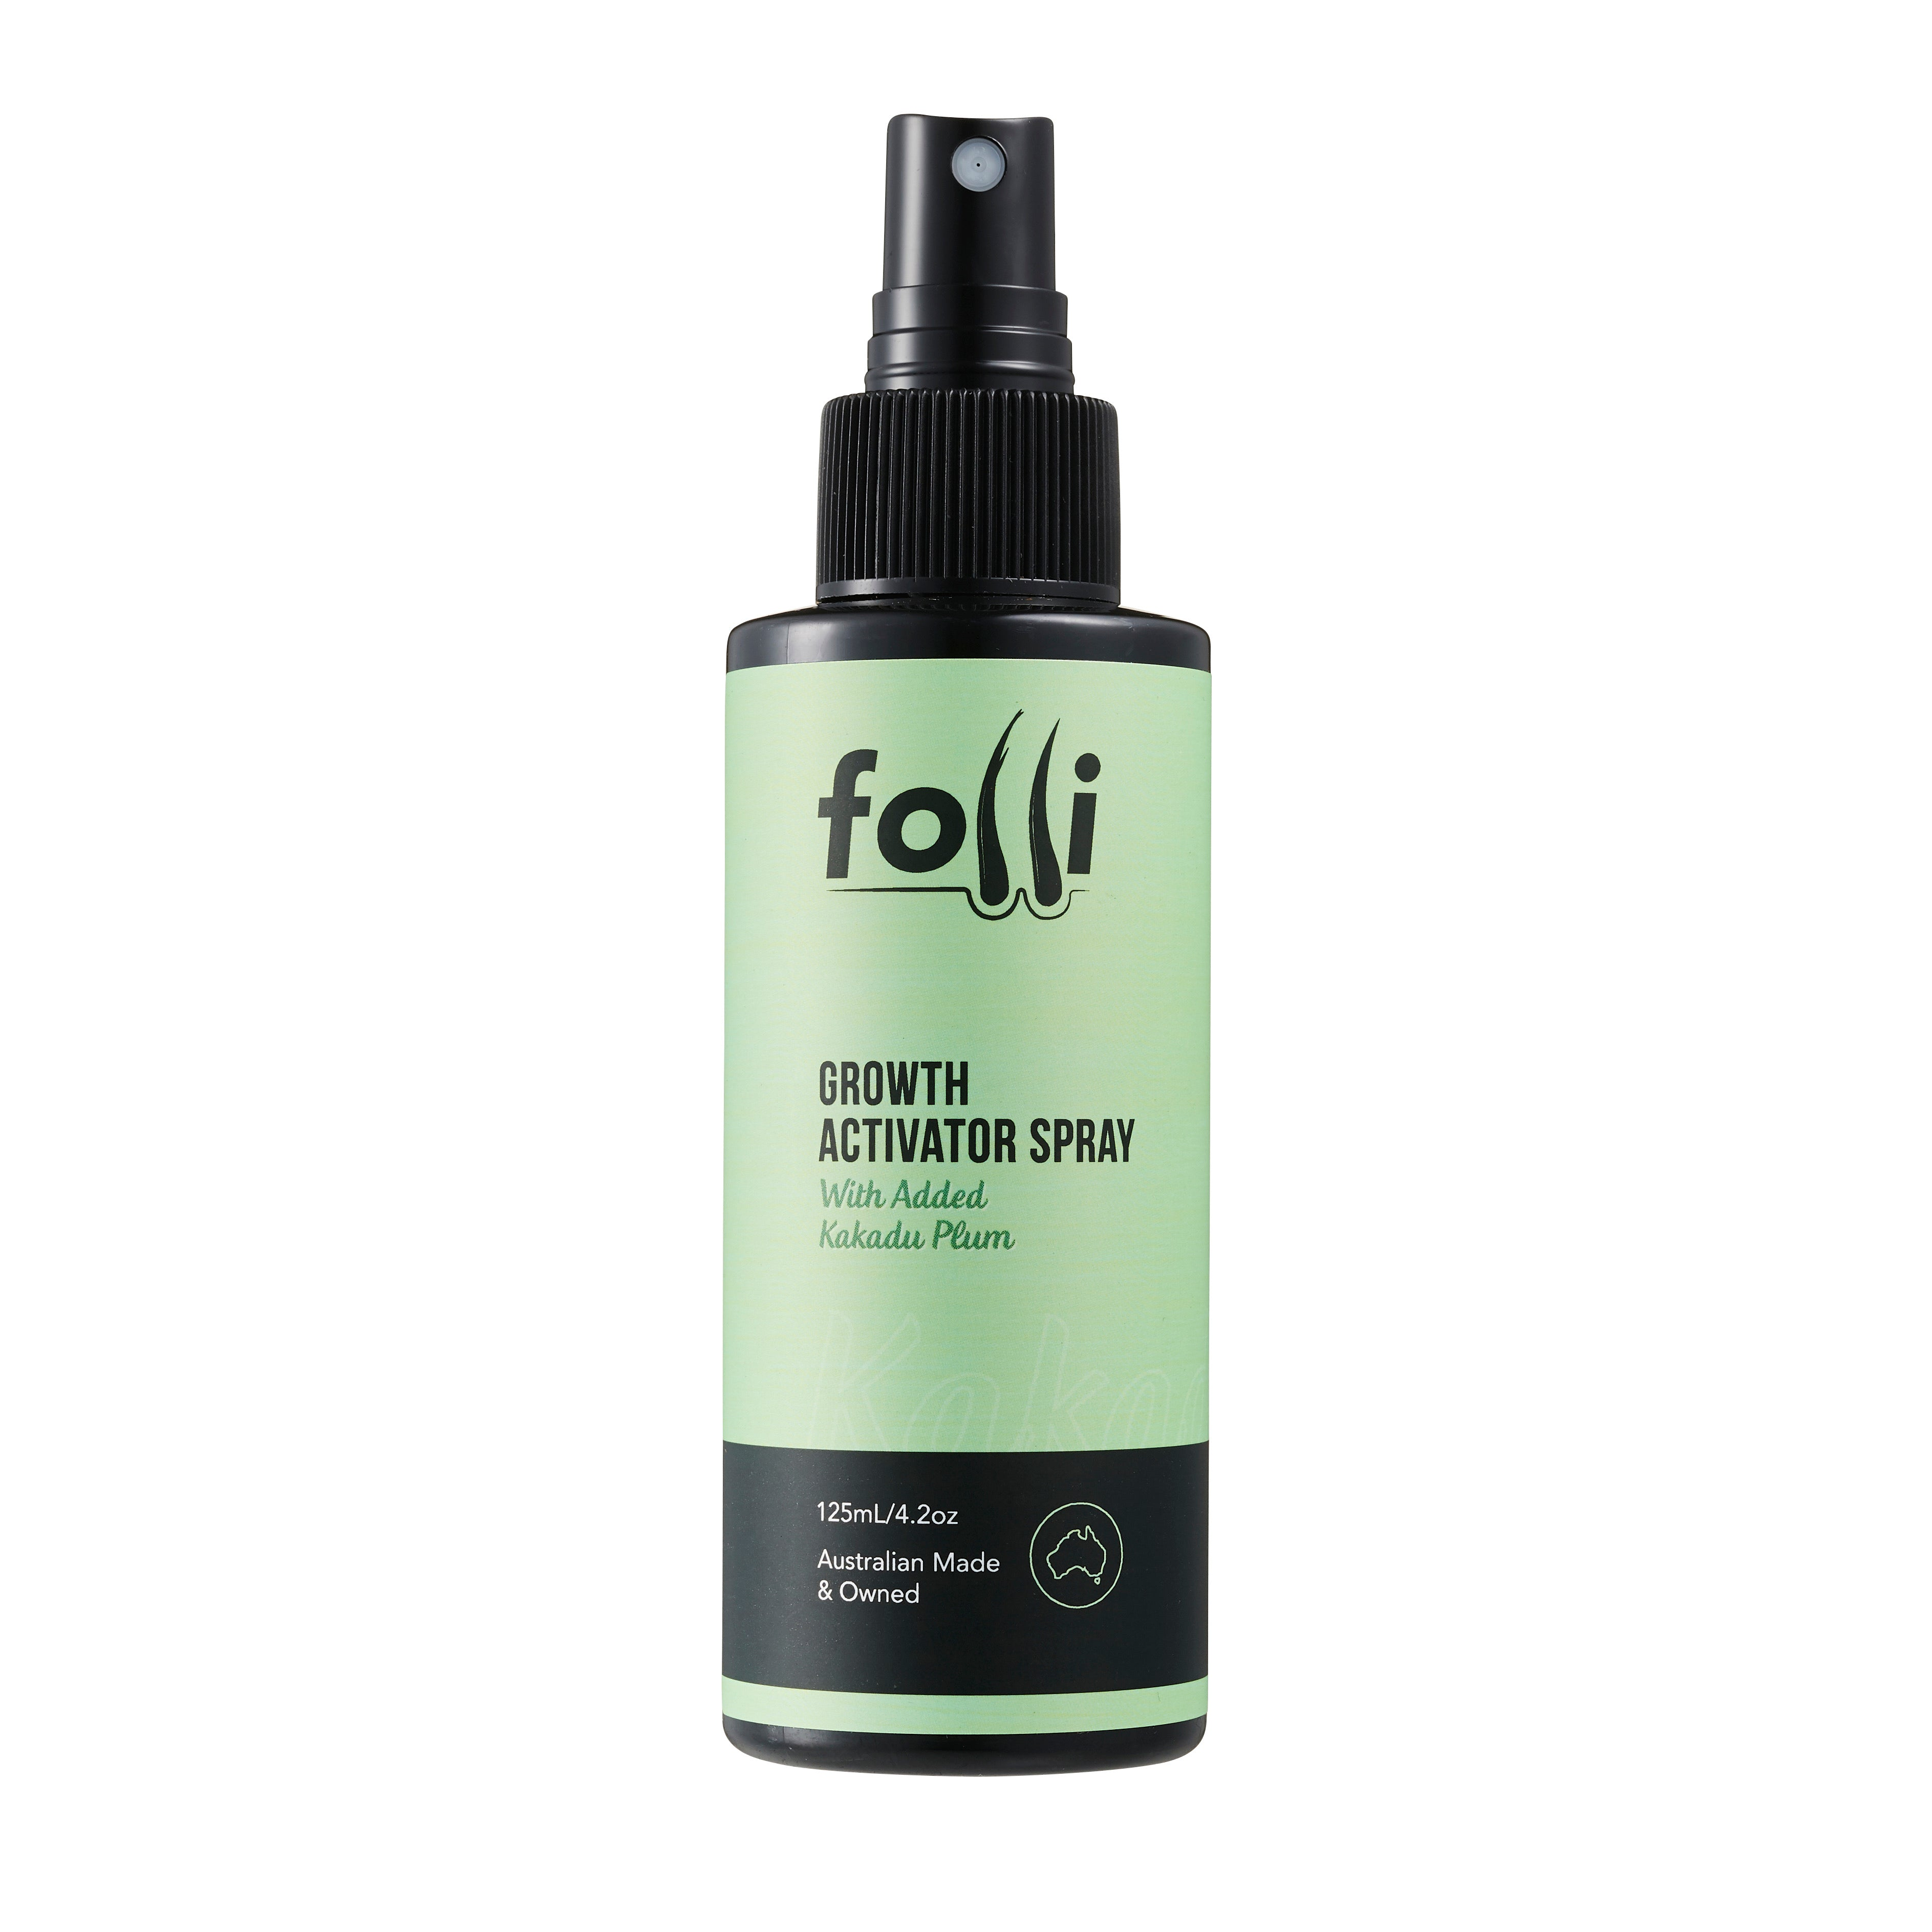 folli natural growth spray